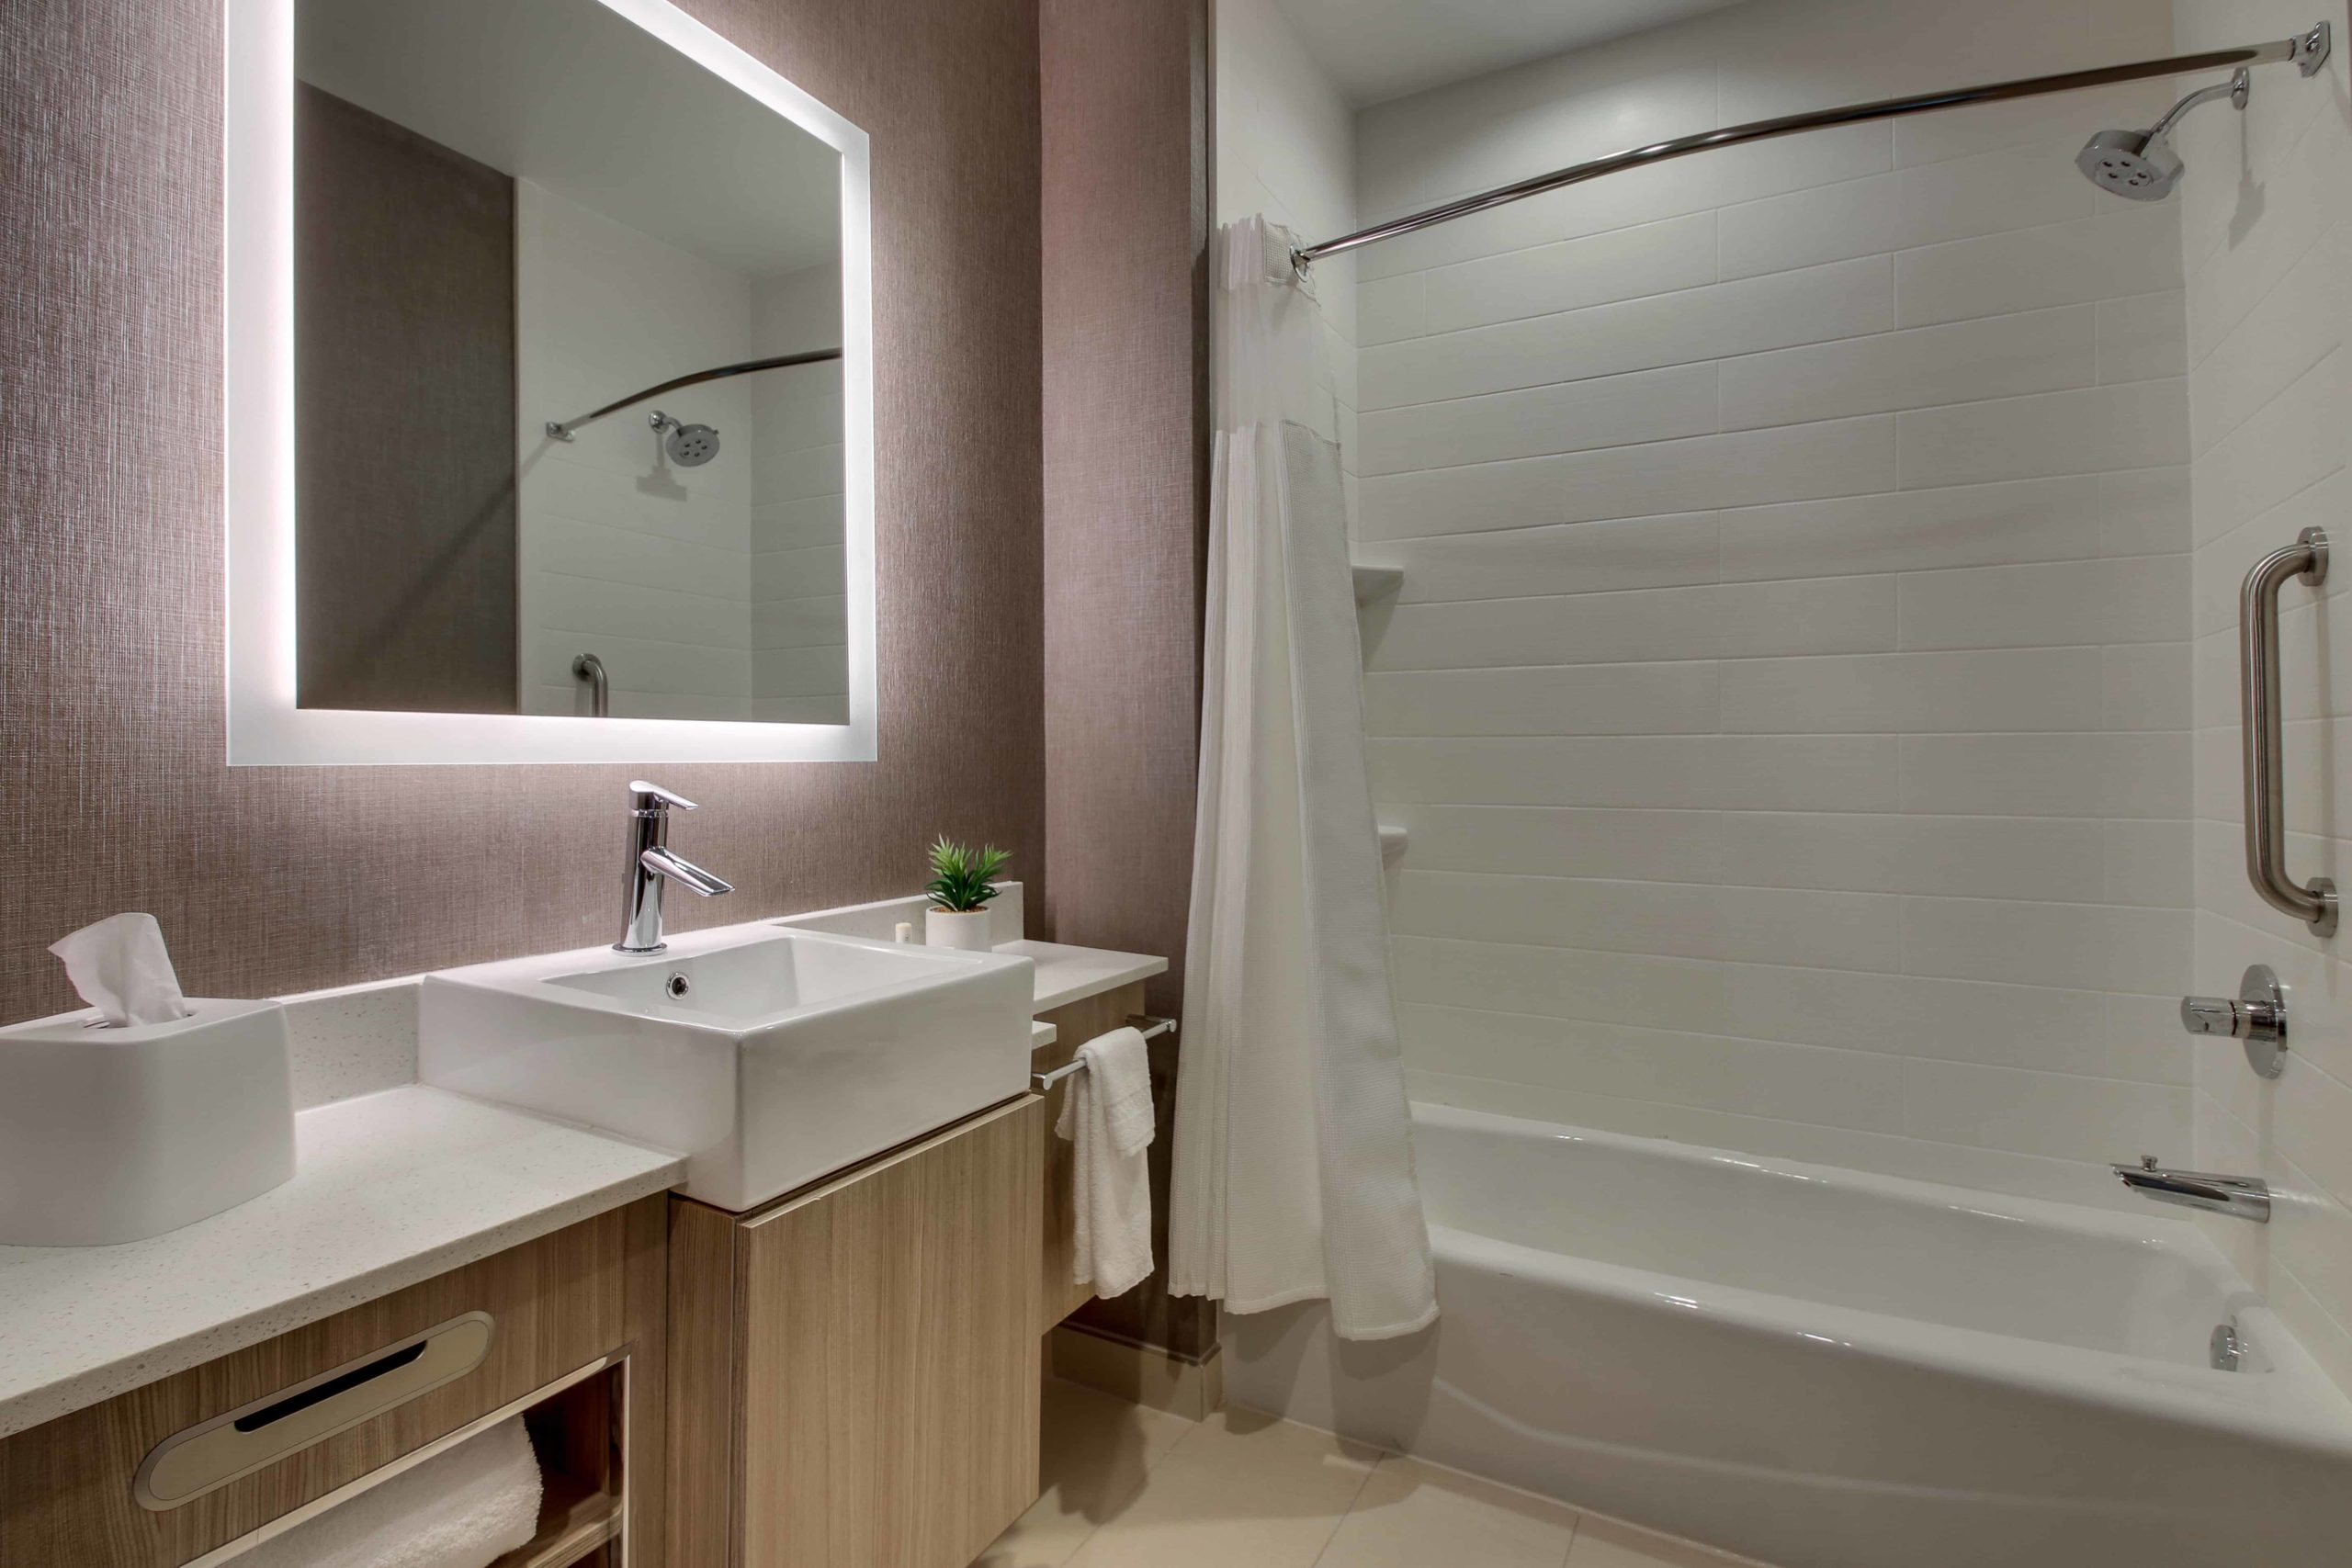 approved Hotel Photography of springHill Suites Gulfport 0017 0013